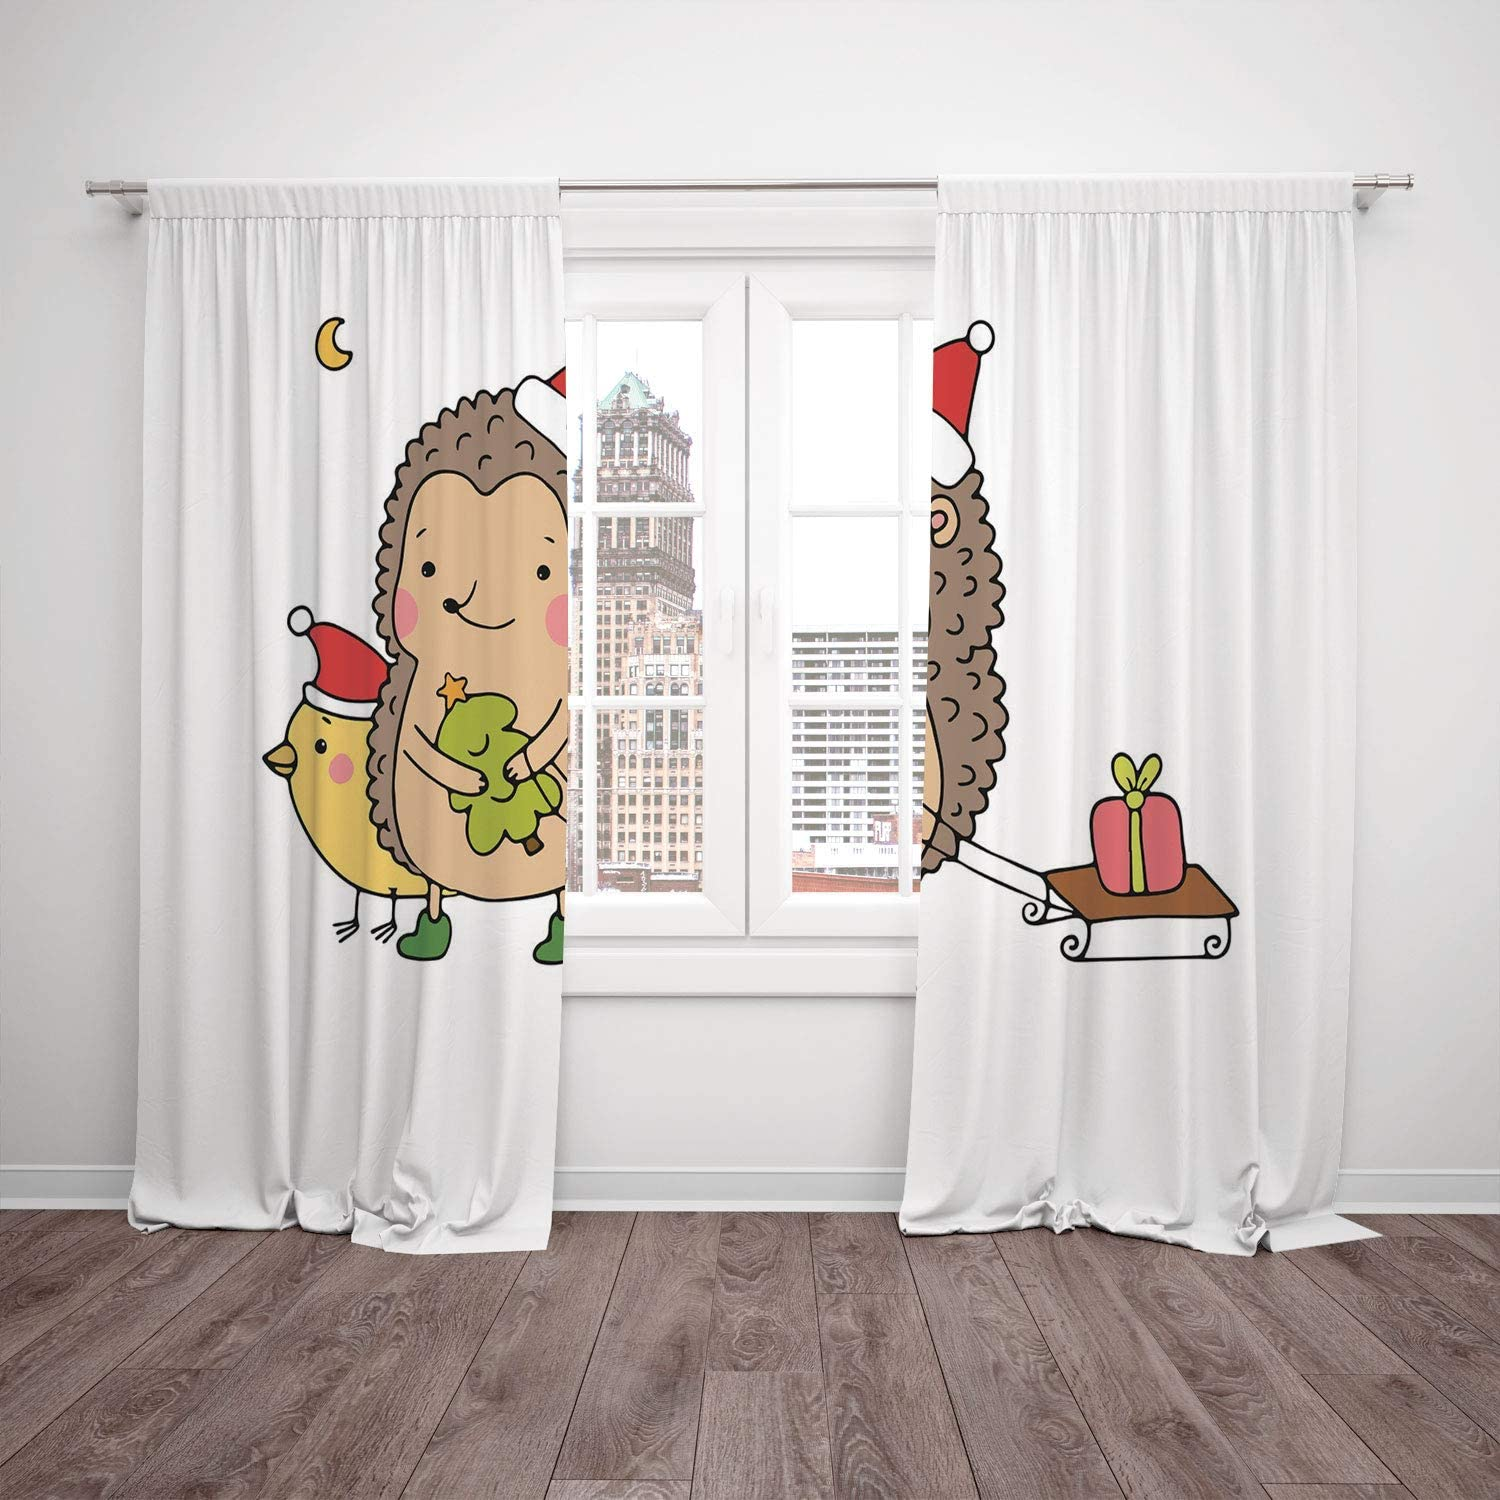 Polyester Window Drapes Kitchen Curtains Hedgehog Cartoon Hedgehog With Bird And A Christmas Tree Pulling Sled Holiday Themed Image Multicolor Living Room Bedroom Kitchen Cafe Window Drapes 2 Panel Se Amazon Co Uk Kitchen Home